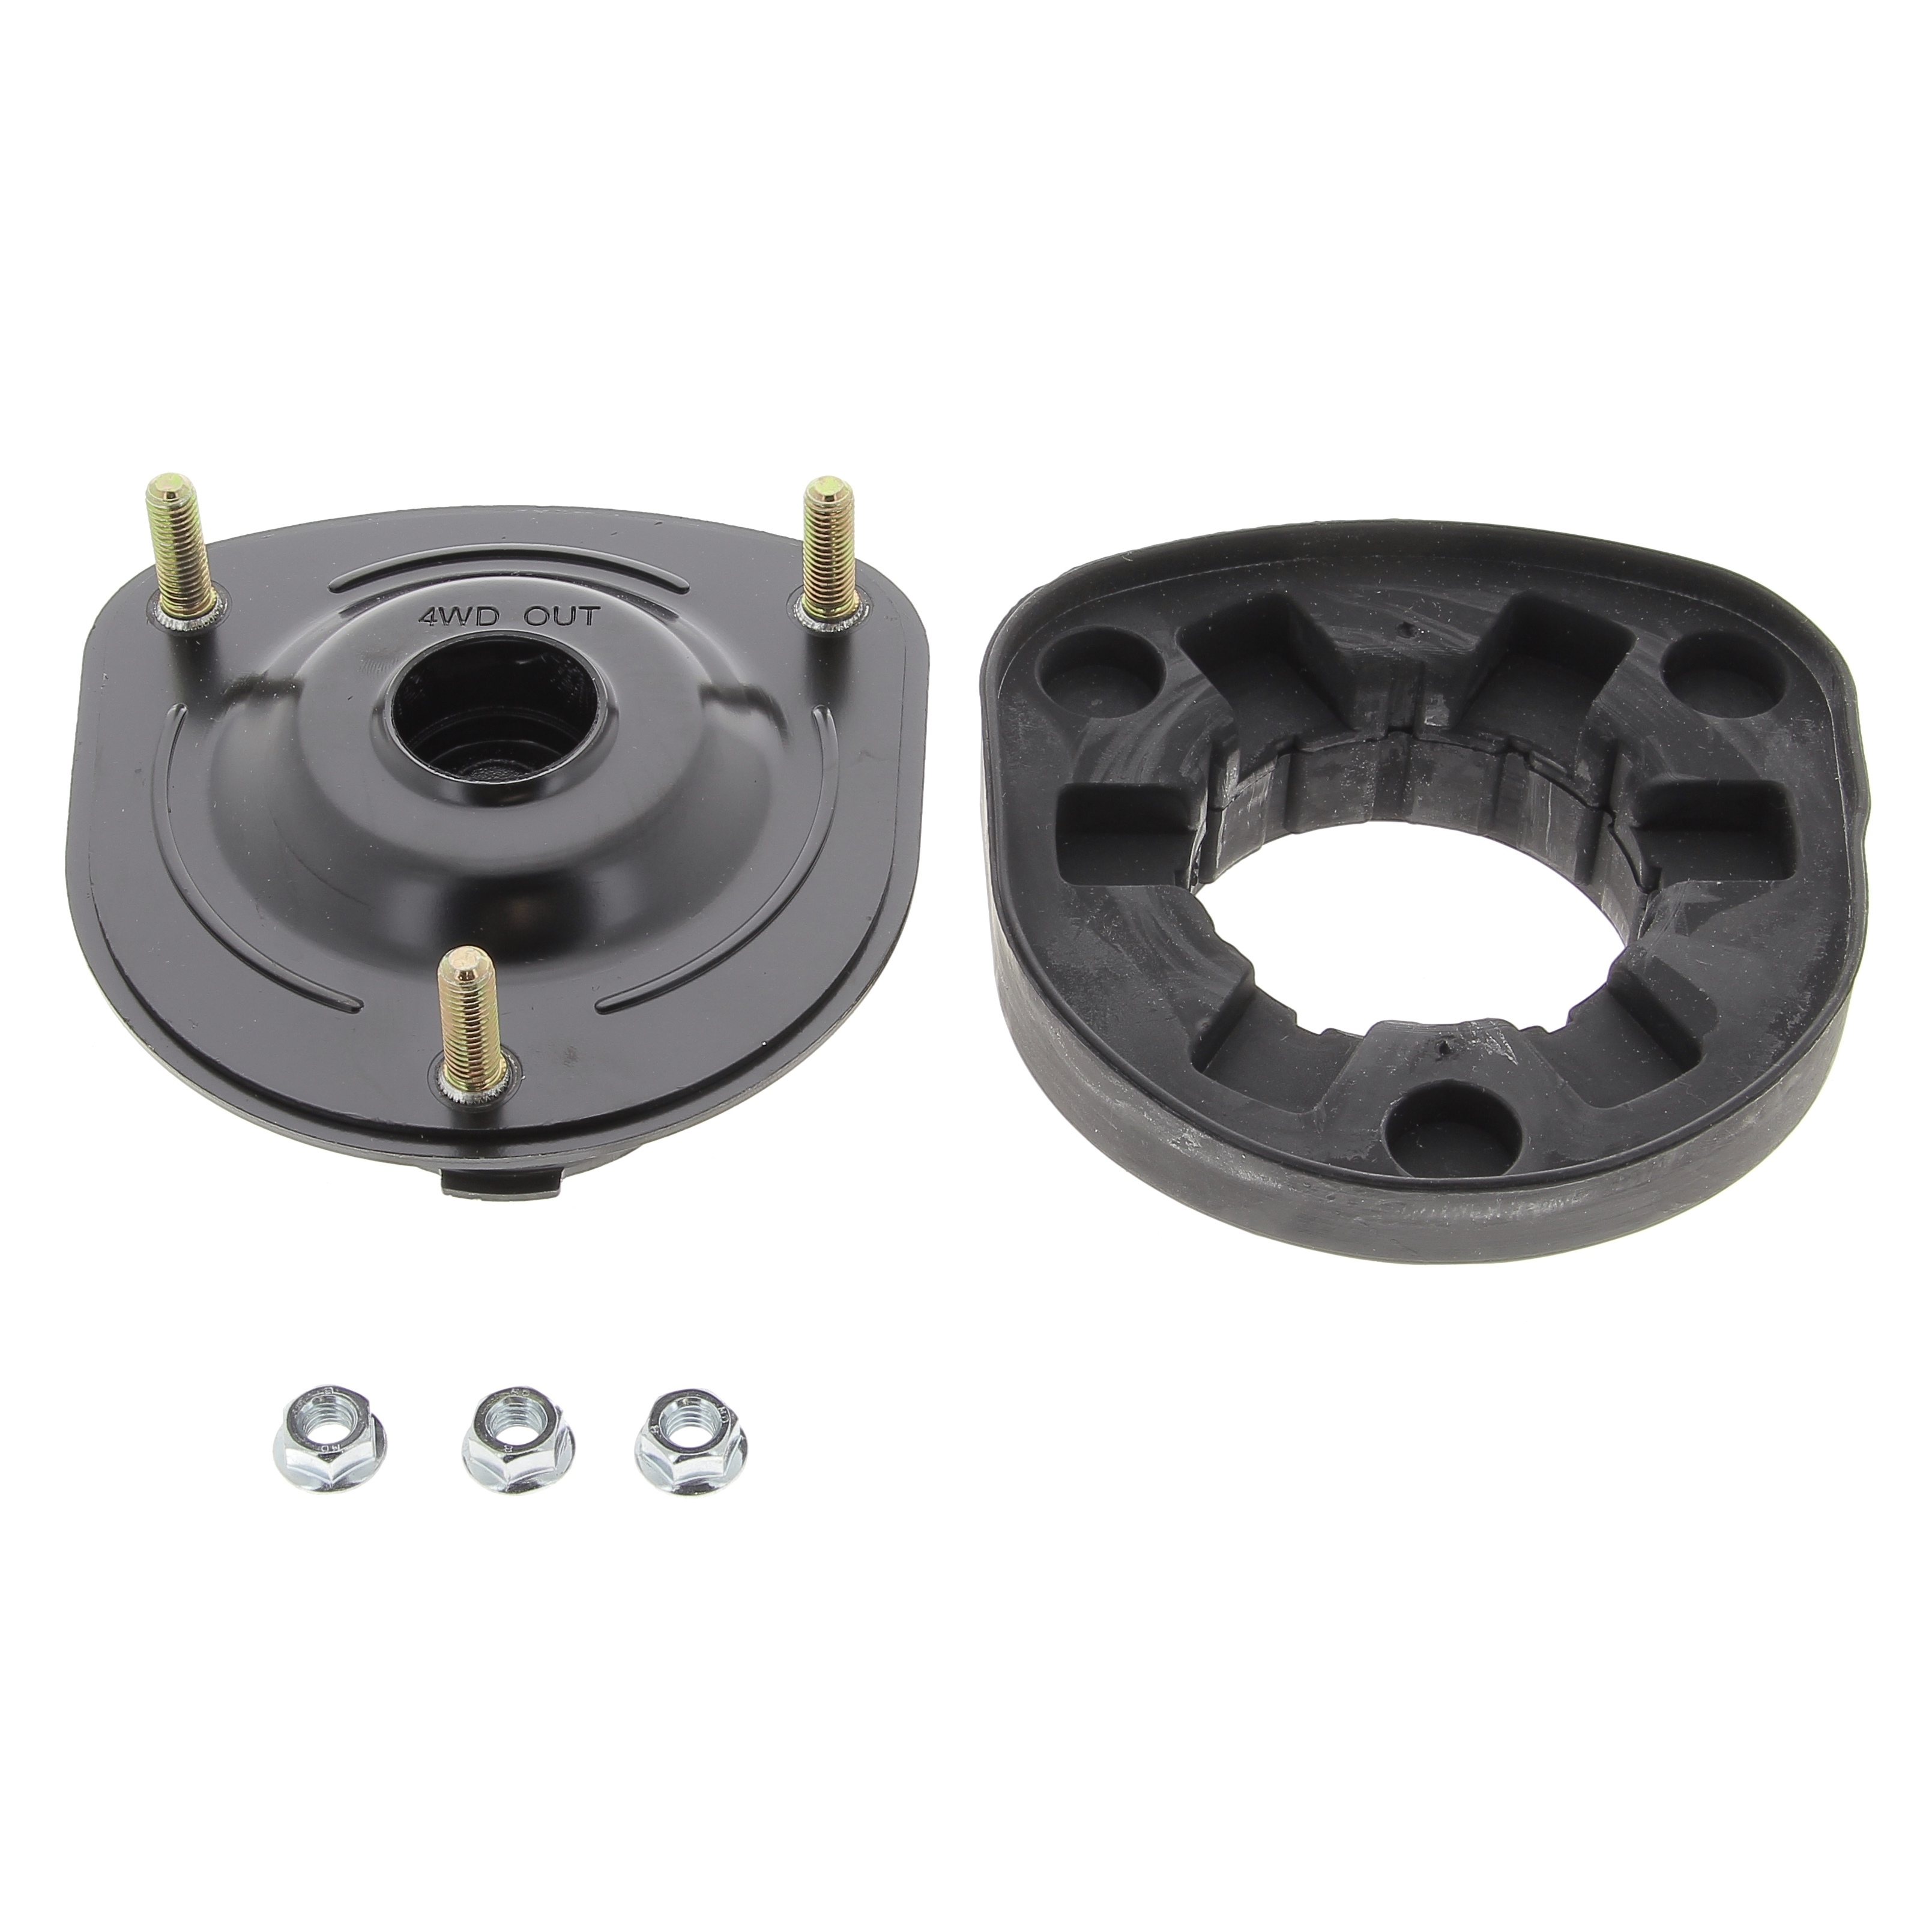 Details about KYB Strut Top Mount KSM5422 fits Subaru Forester 2 5 AWD  (SG), 2 5 XT (SG)